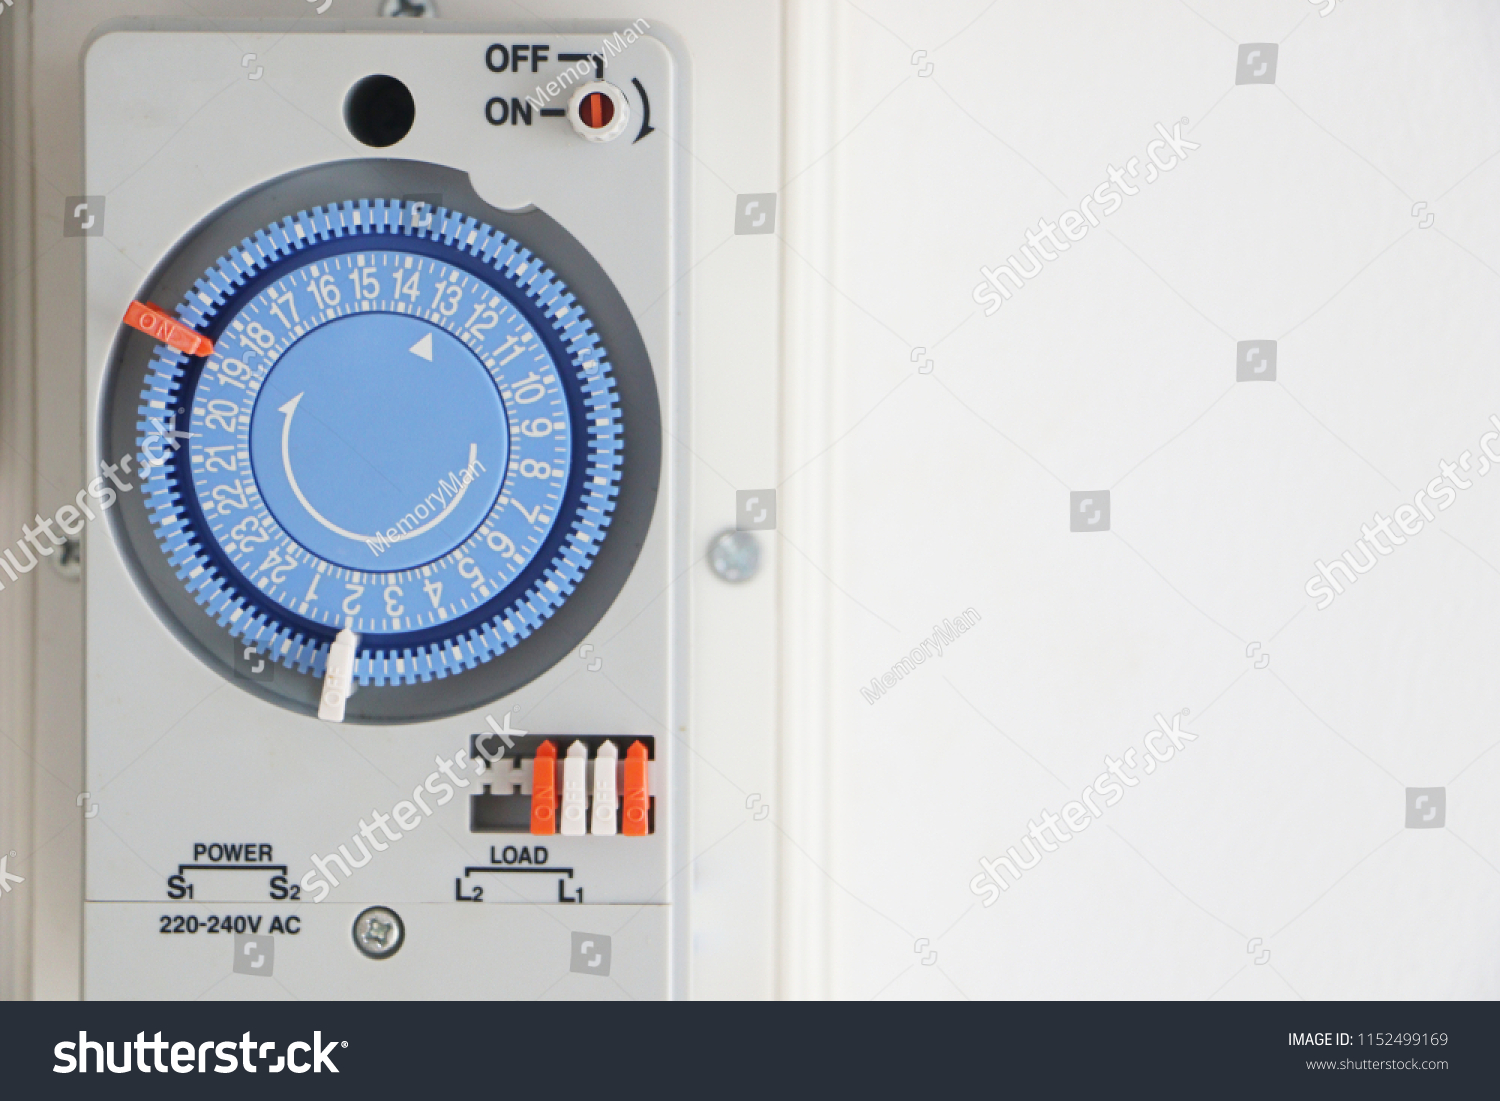 Electrical Timer Switch Control Set Stock Photo Edit On Off Controltimer For System Time